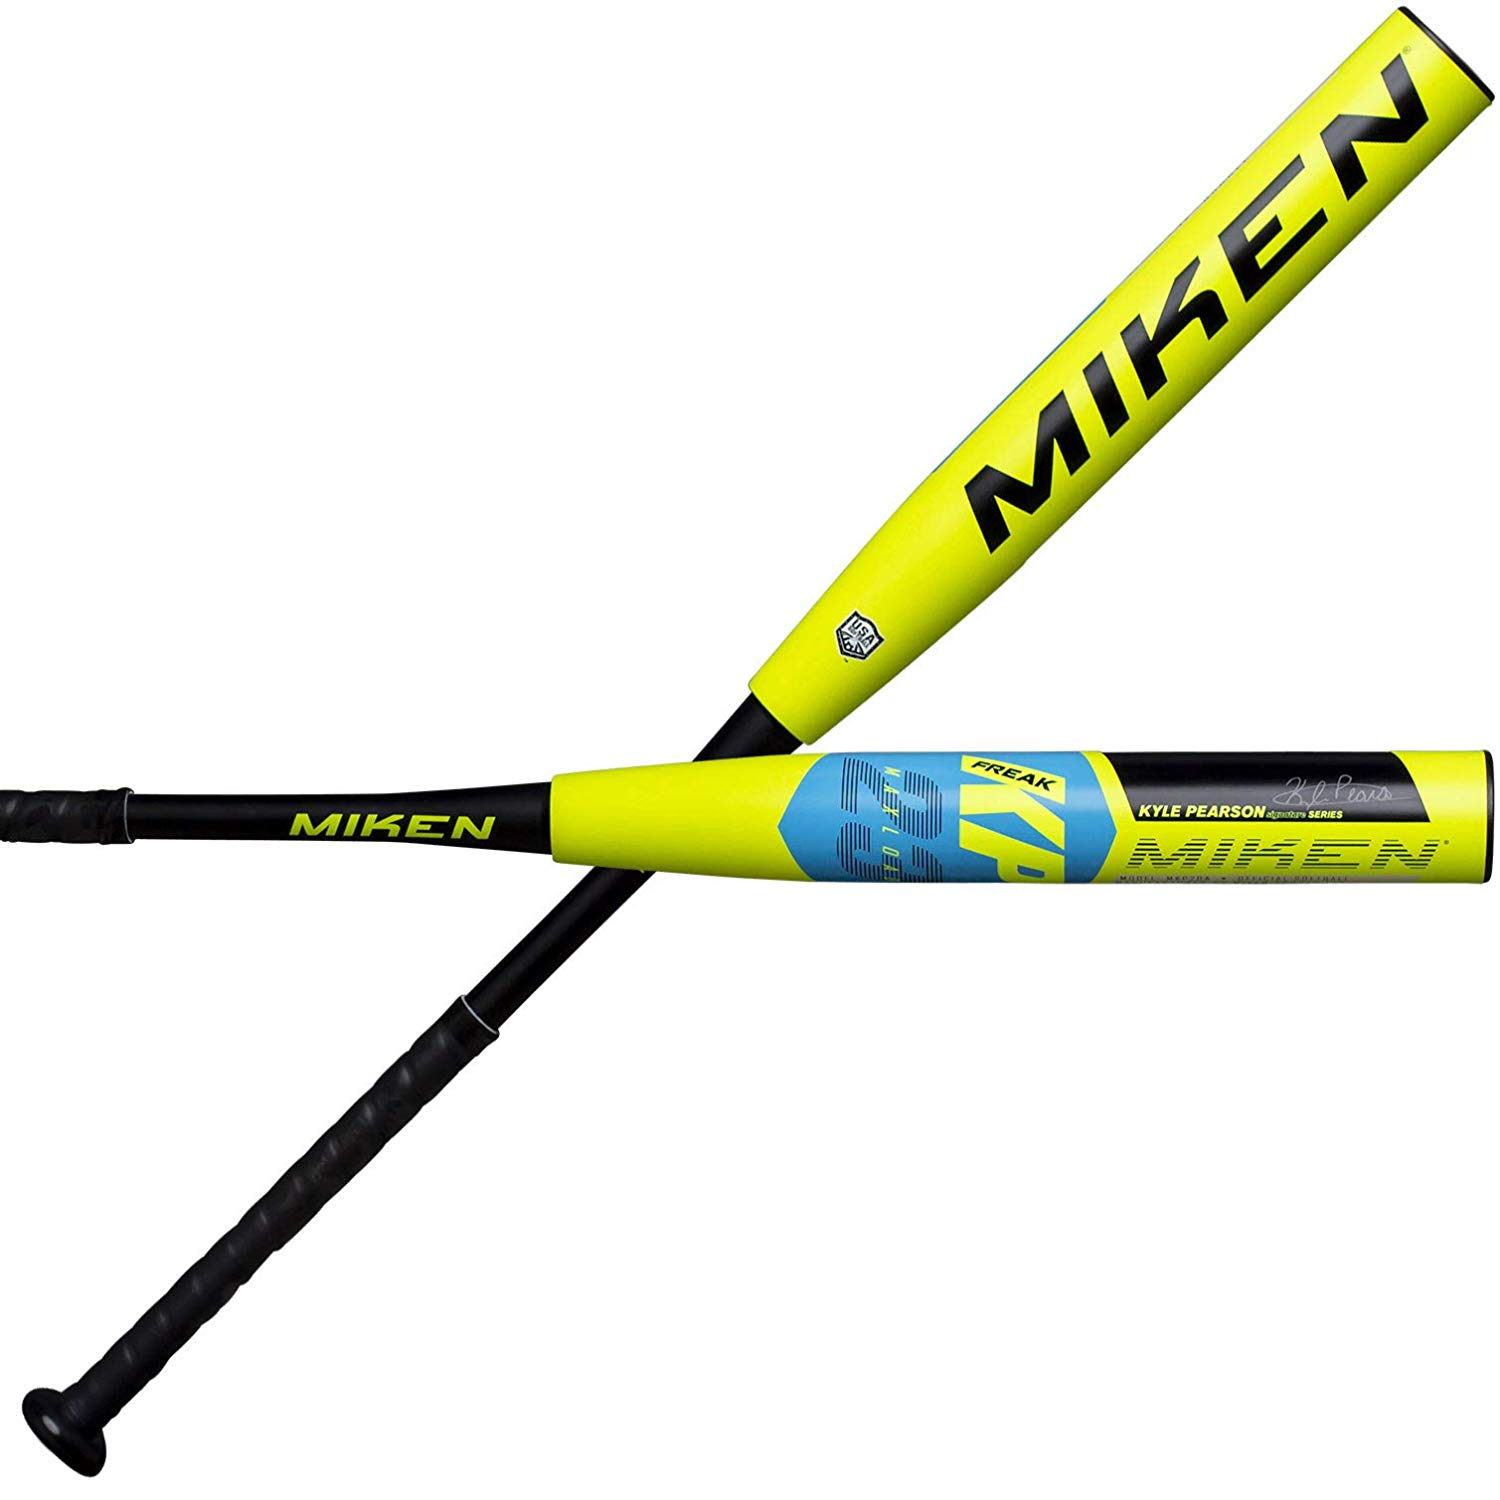 miken-2020-kyle-pearson-freak-23-maxload-asa-slow-pitch-softball-bat-34-inch-28-oz MKP20A-3-28 Miken 658925042959 DESIGNED FOR ADULTS PLAYING RECREATIONAL AND COMPETITIVE SLOWPITCH SOFTBALL this Miken